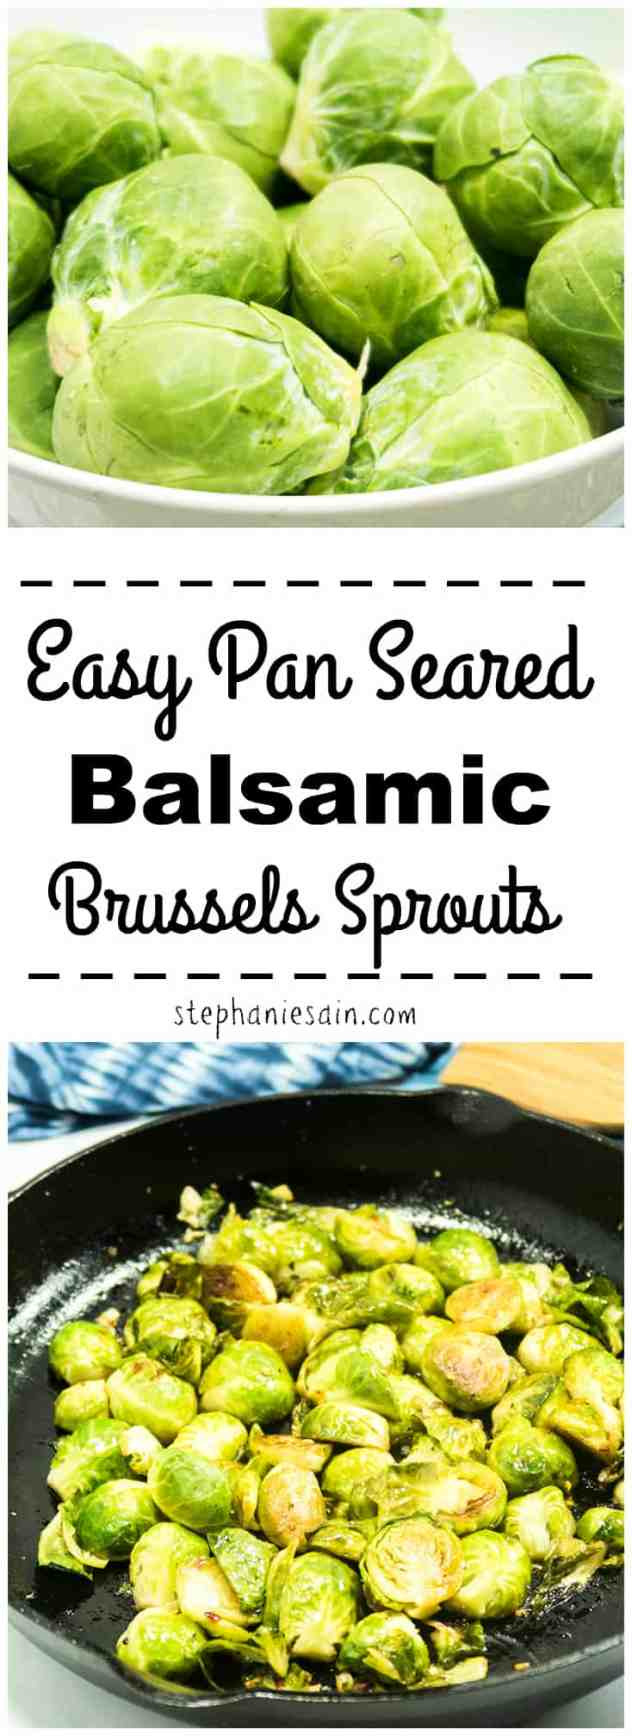 Easy Pan Seared Balsamic Brussels Sprouts are the perfect quick side for any meal and also great for the holidays. Pan seared in a garlic, buttery, balsamic sauce & browned to perfection. Vegetarian & Gluten Free.